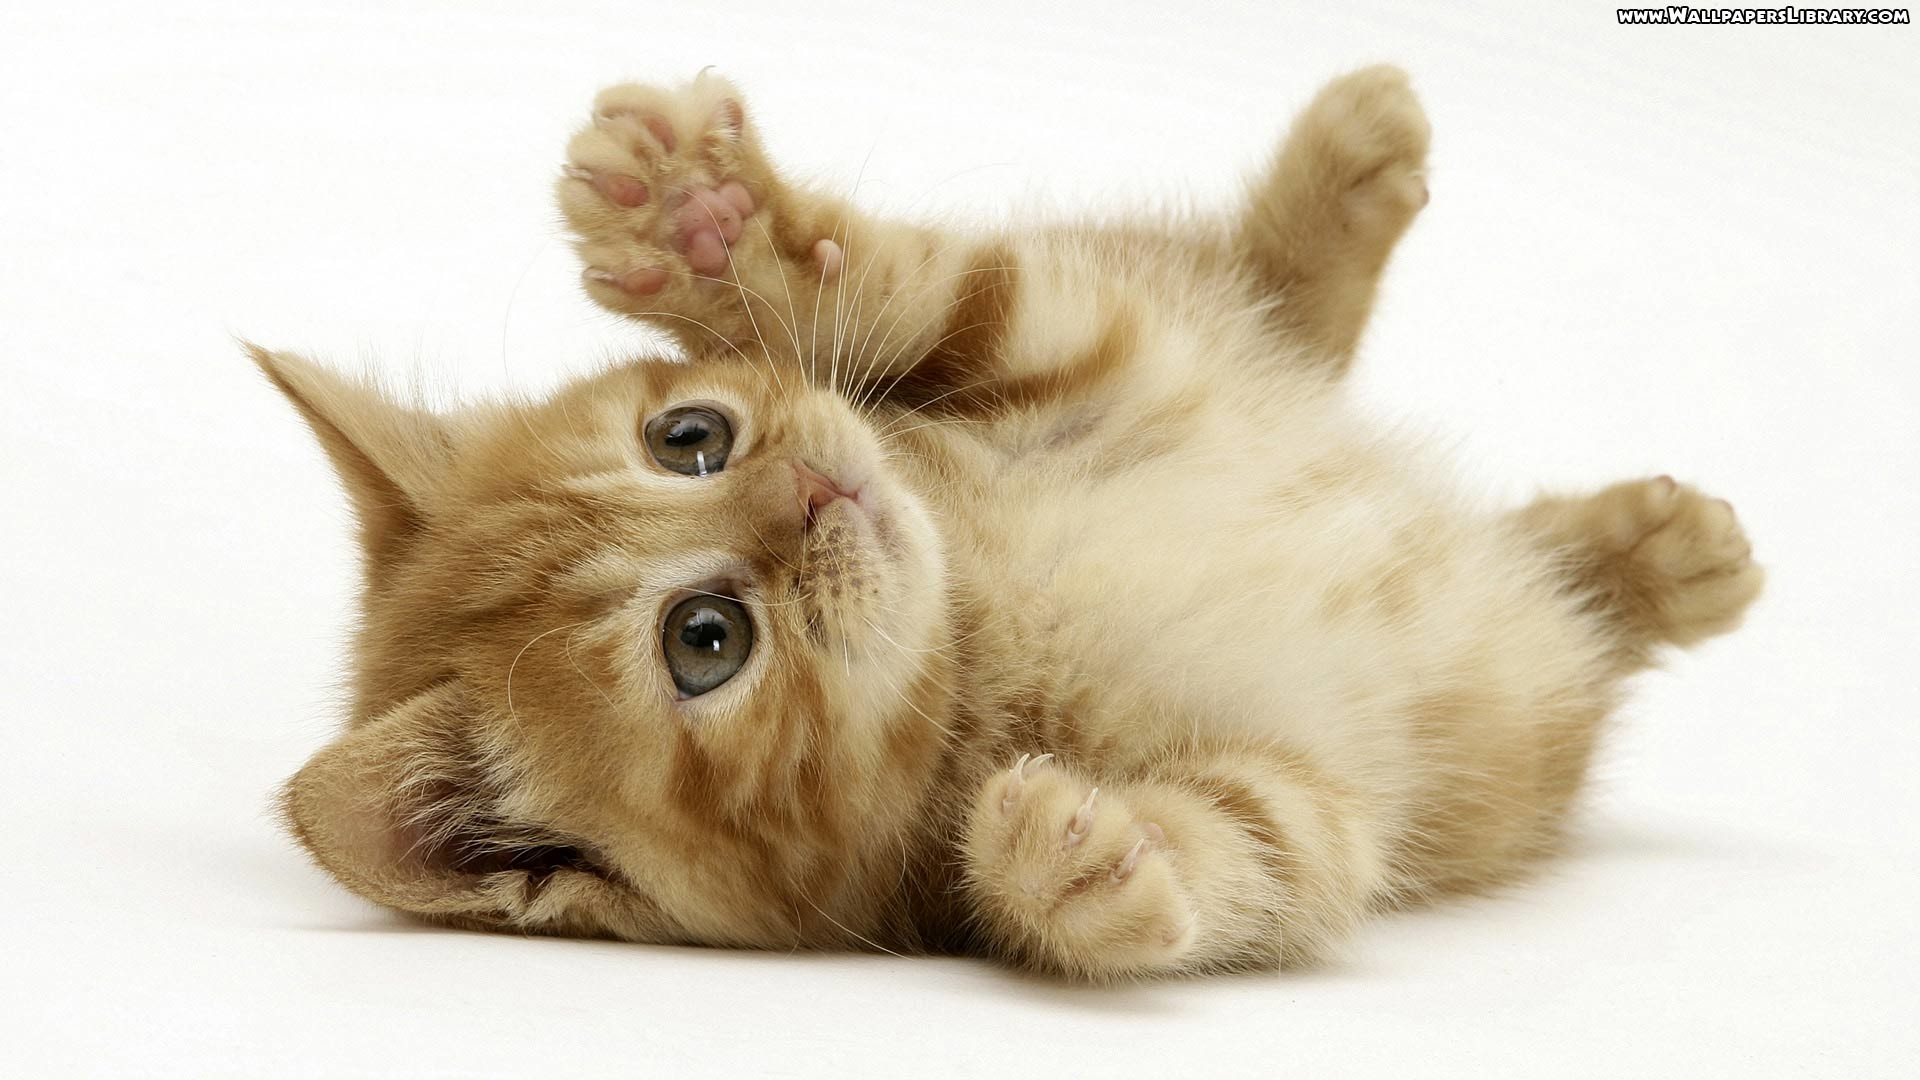 Res: 1920x1080, Kittens Wallpapers Wallpaper Cave - HD Wallpapers